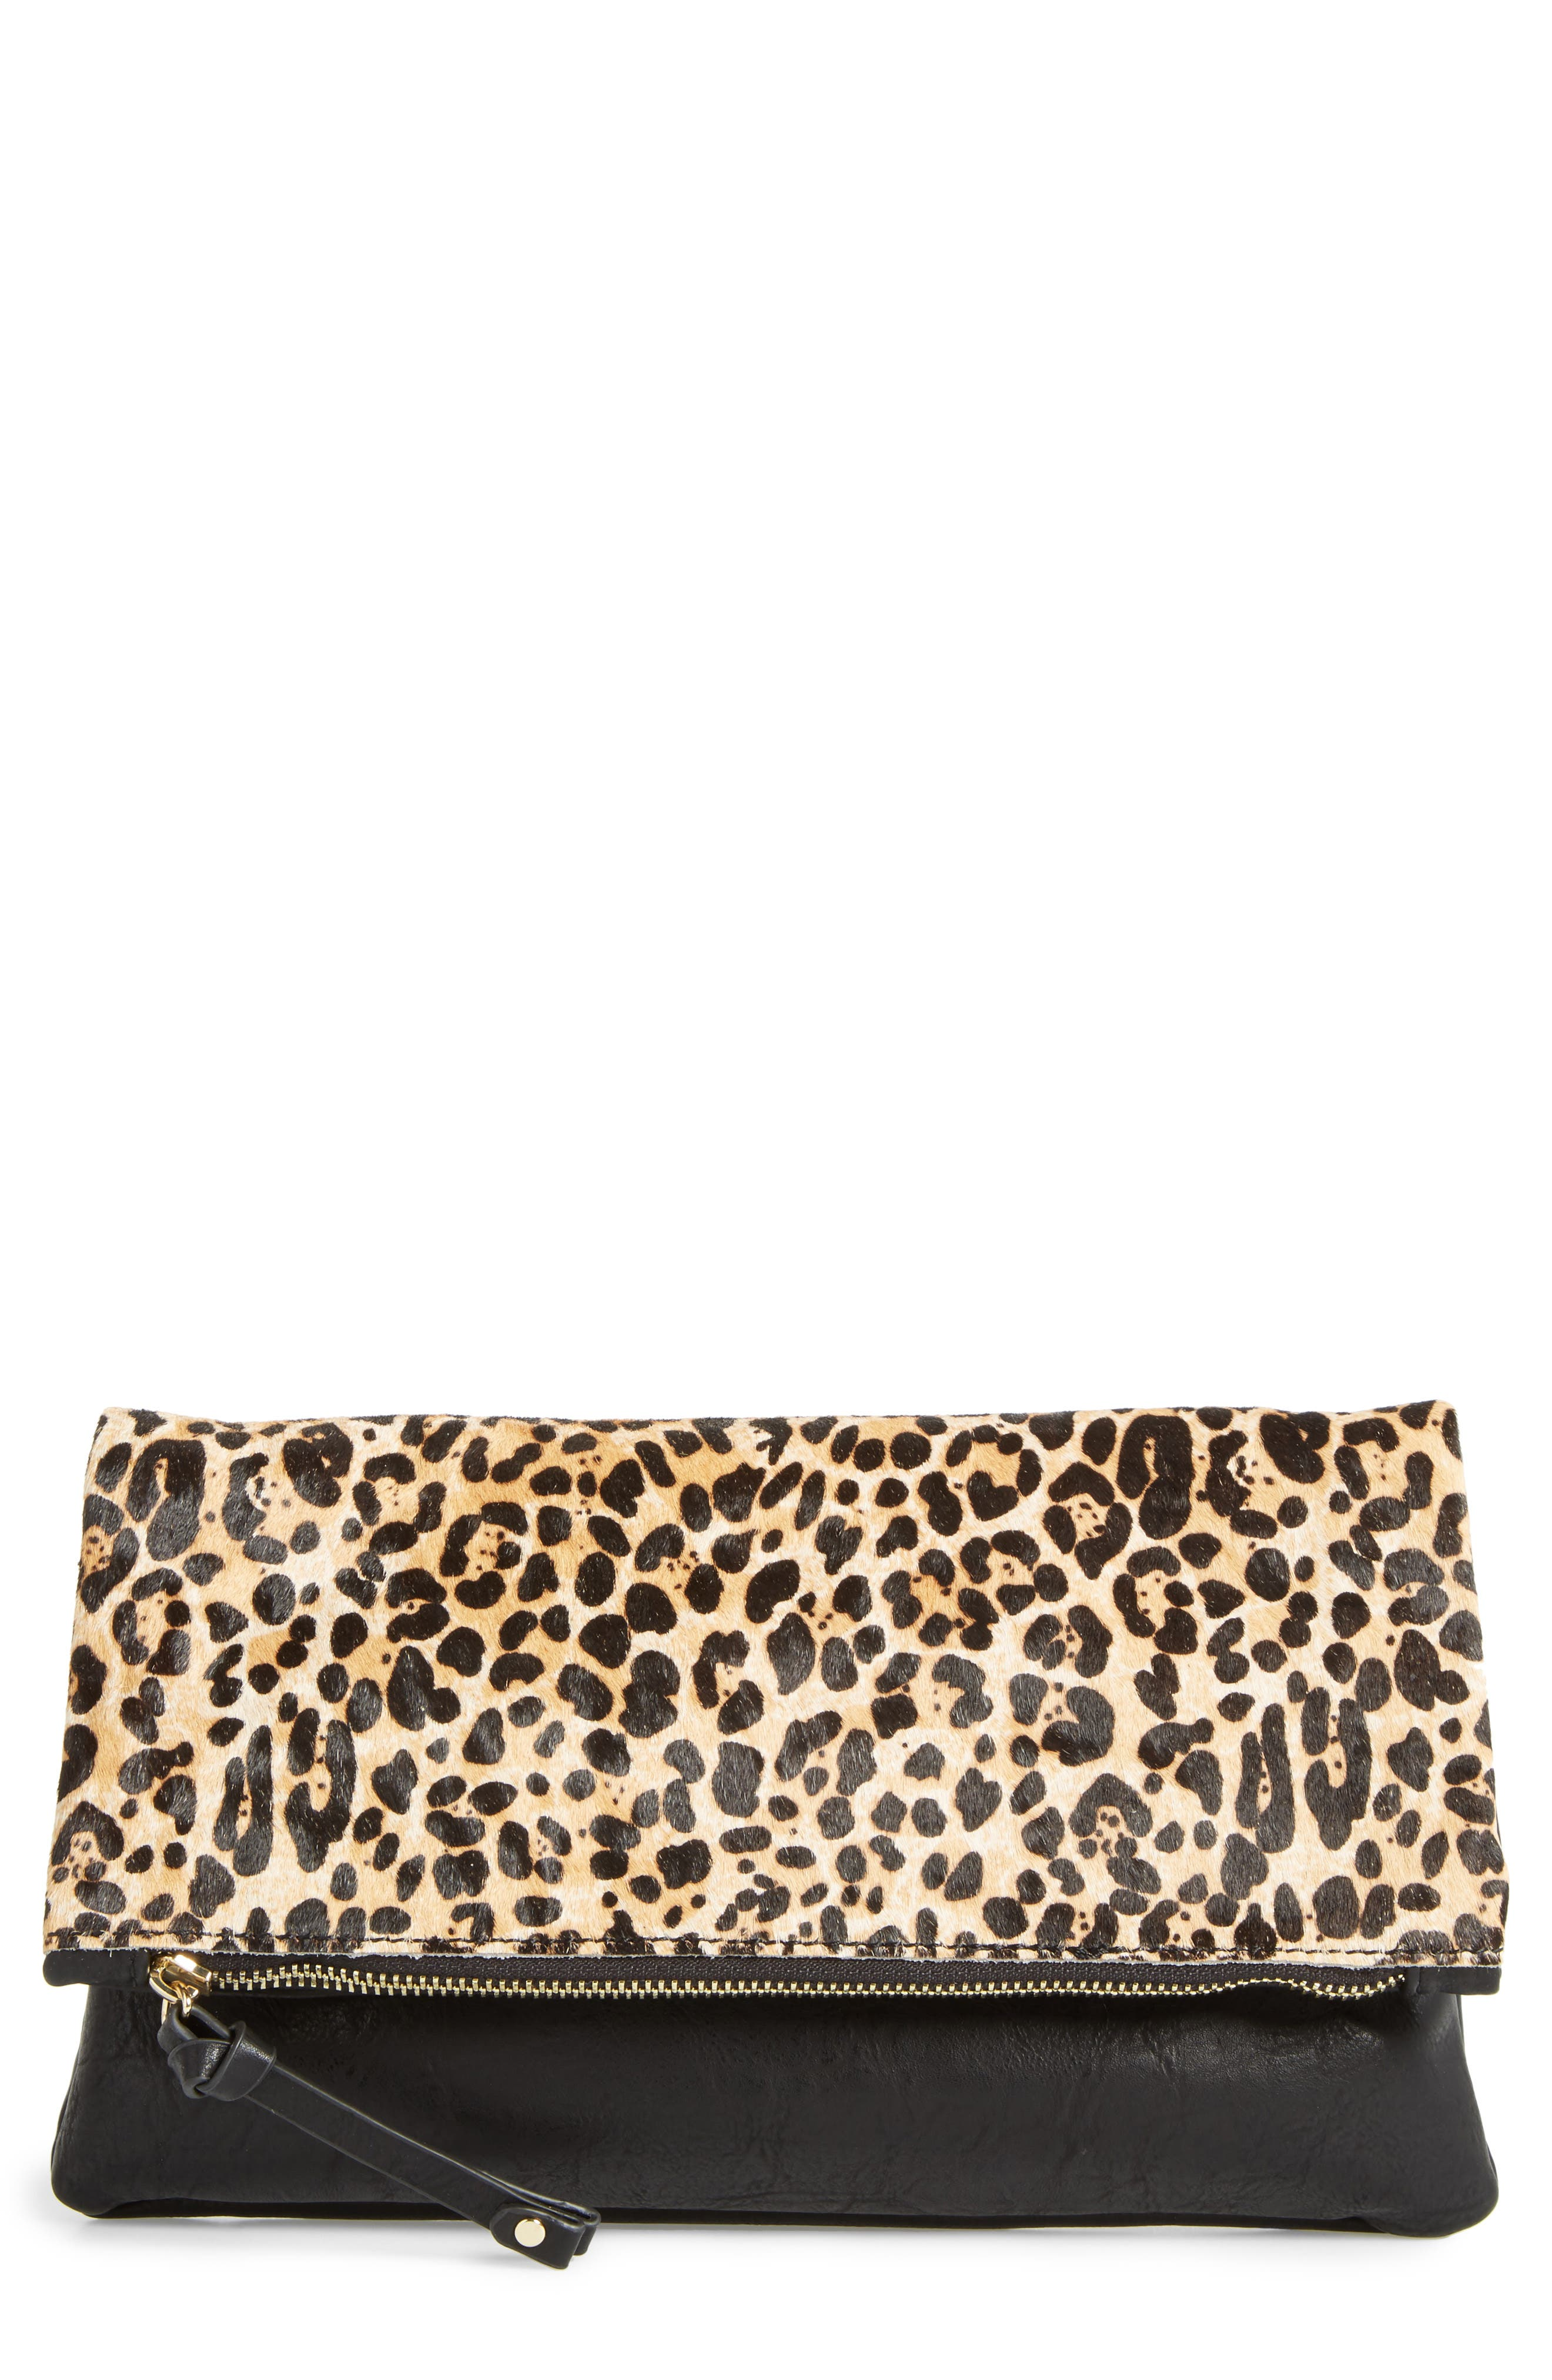 SOLE SOCIETY, Marlena Faux Leather Foldover Clutch, Main thumbnail 1, color, 200